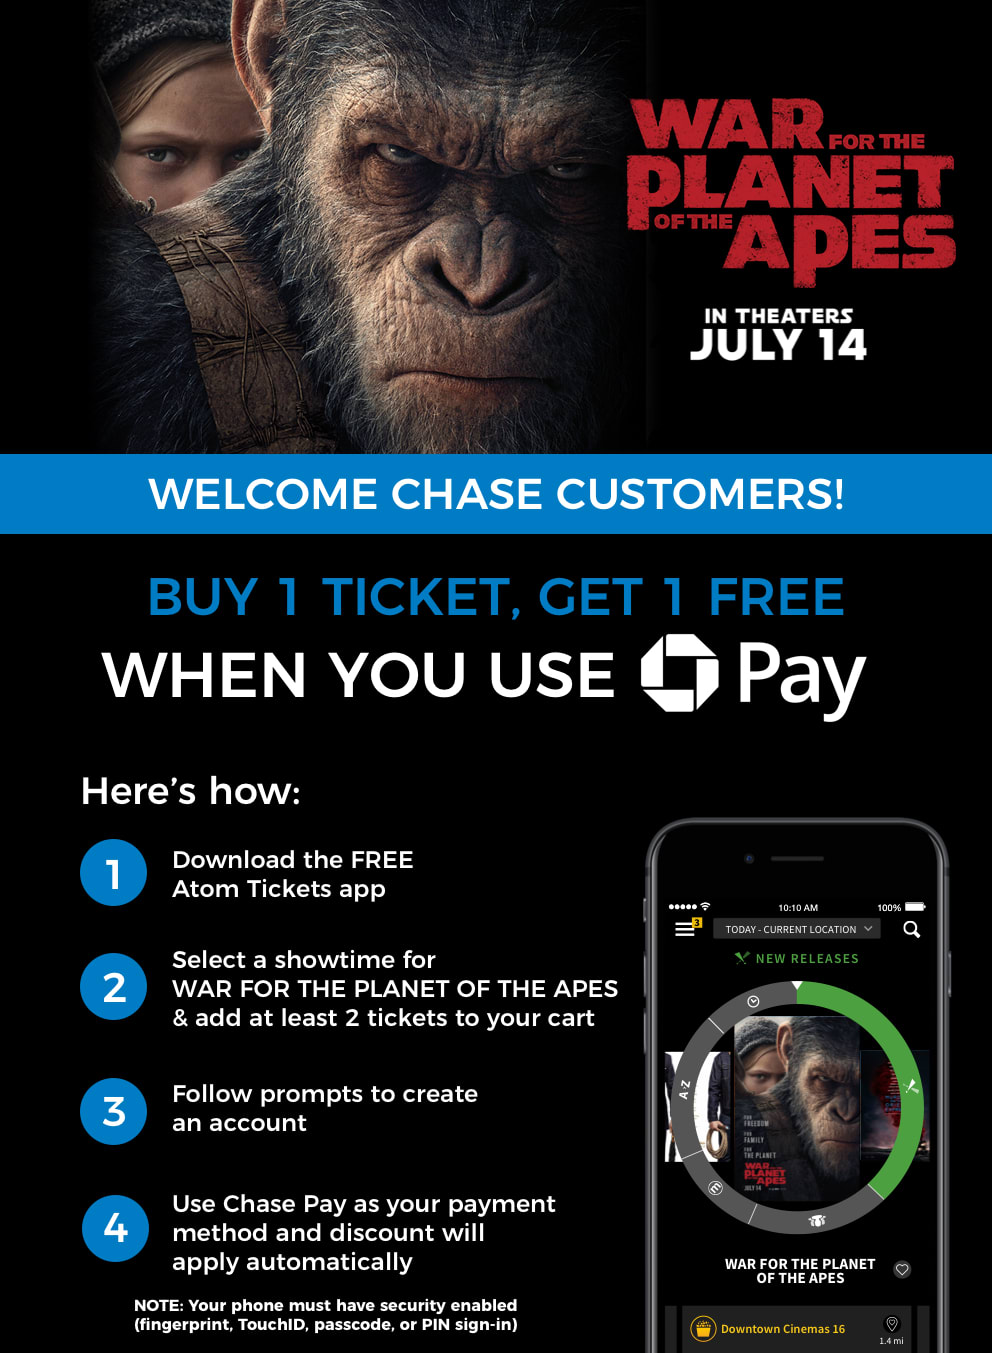 WAR FOR THE PLANET OF THE APES Buy One, Get One Chase Pay